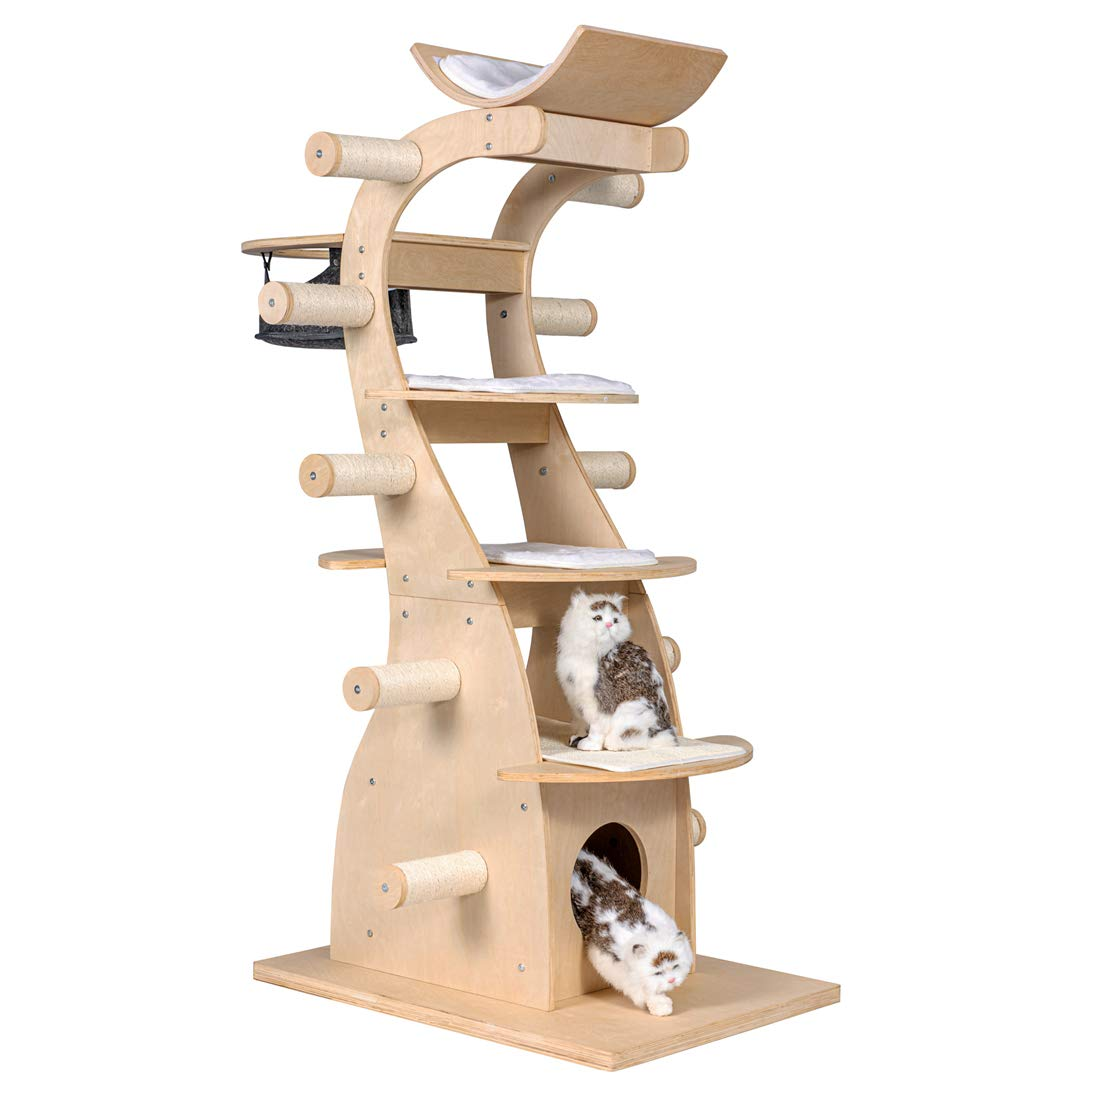 Good Life 63'' Modern Design Cat Tree House with Scratching Post Tower - Deluxe Solid Wood Indoor Furniture - 6 Floors Kitty Condo Climbing Play Center with Hammock Perch Cave and Ten Sisal Columns by GOOD LIFE USA